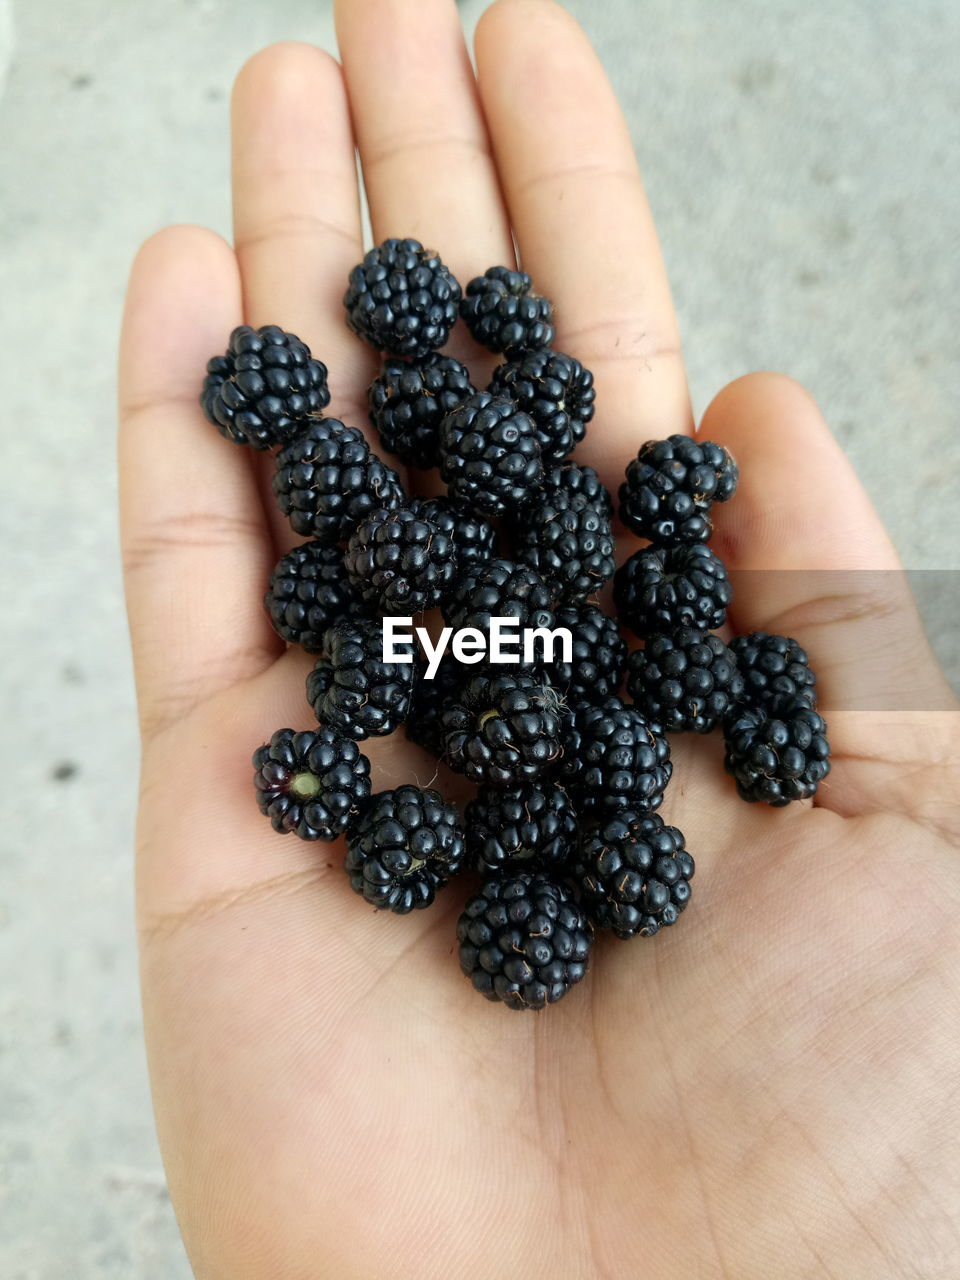 human hand, human body part, hand, one person, berry fruit, healthy eating, holding, food, body part, food and drink, wellbeing, fruit, real people, unrecognizable person, close-up, freshness, finger, blackberry - fruit, focus on foreground, human finger, ripe